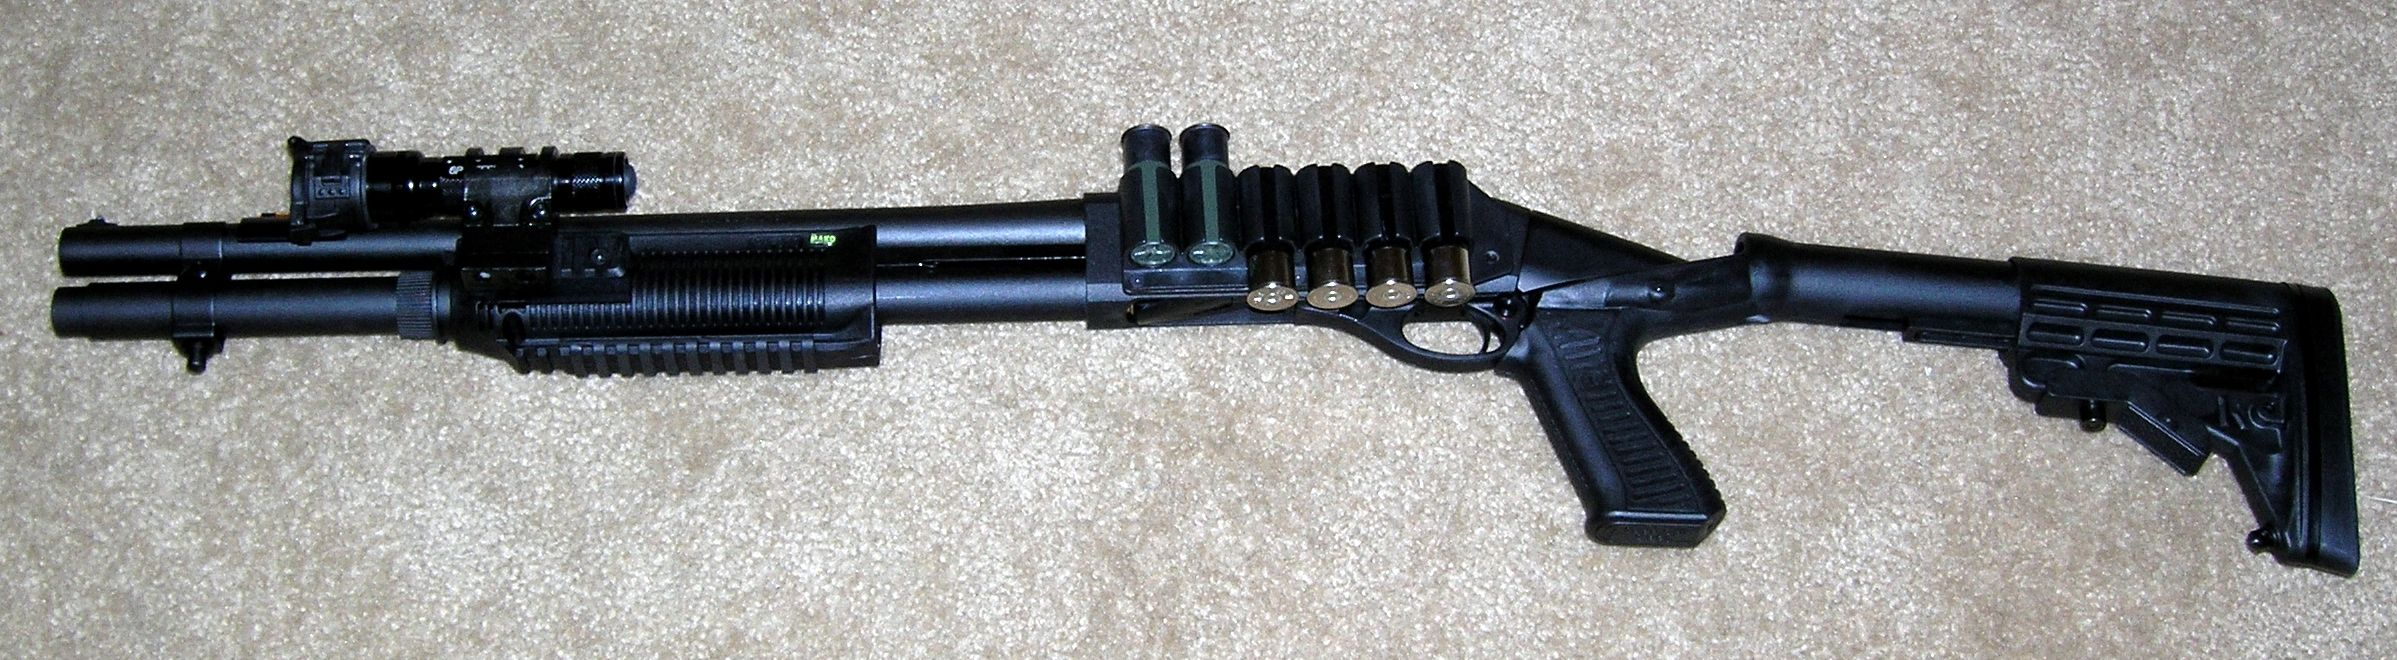 the 12 gauge remington 870 express magnum modified of course